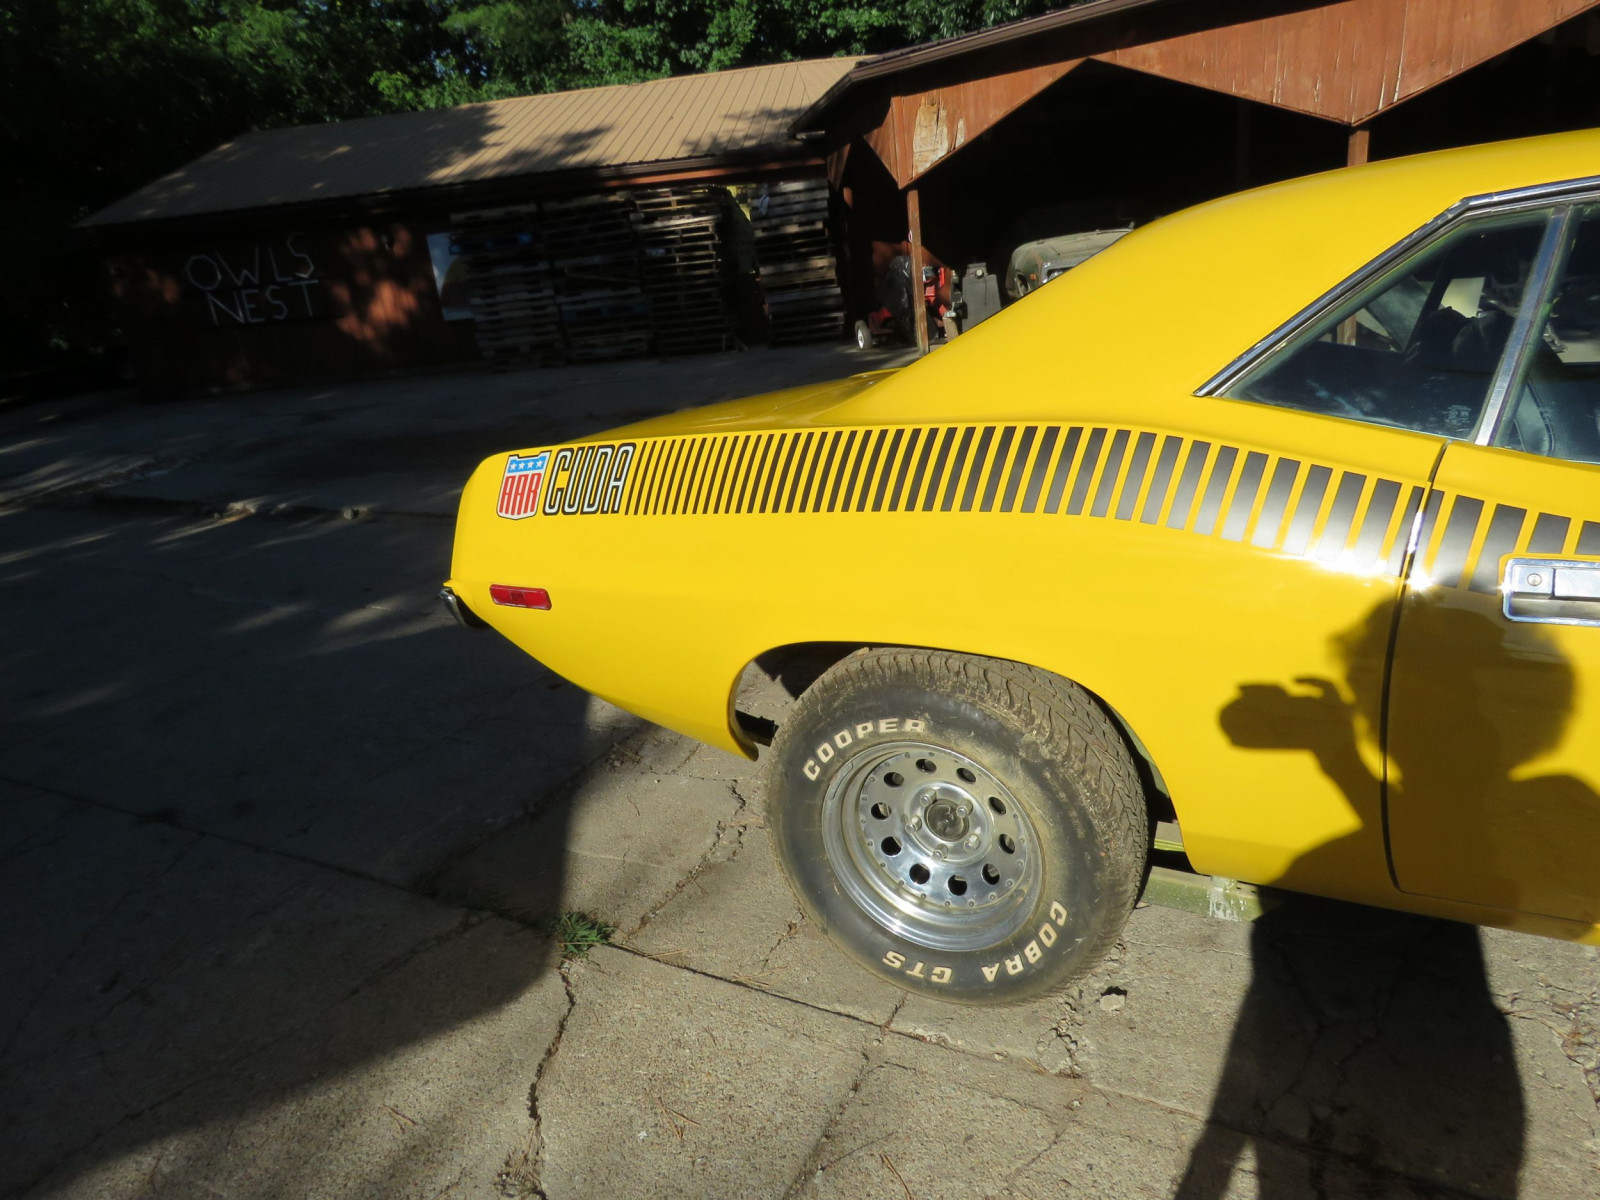 1973 Plymouth Barracuda 2dr HT - Image 4